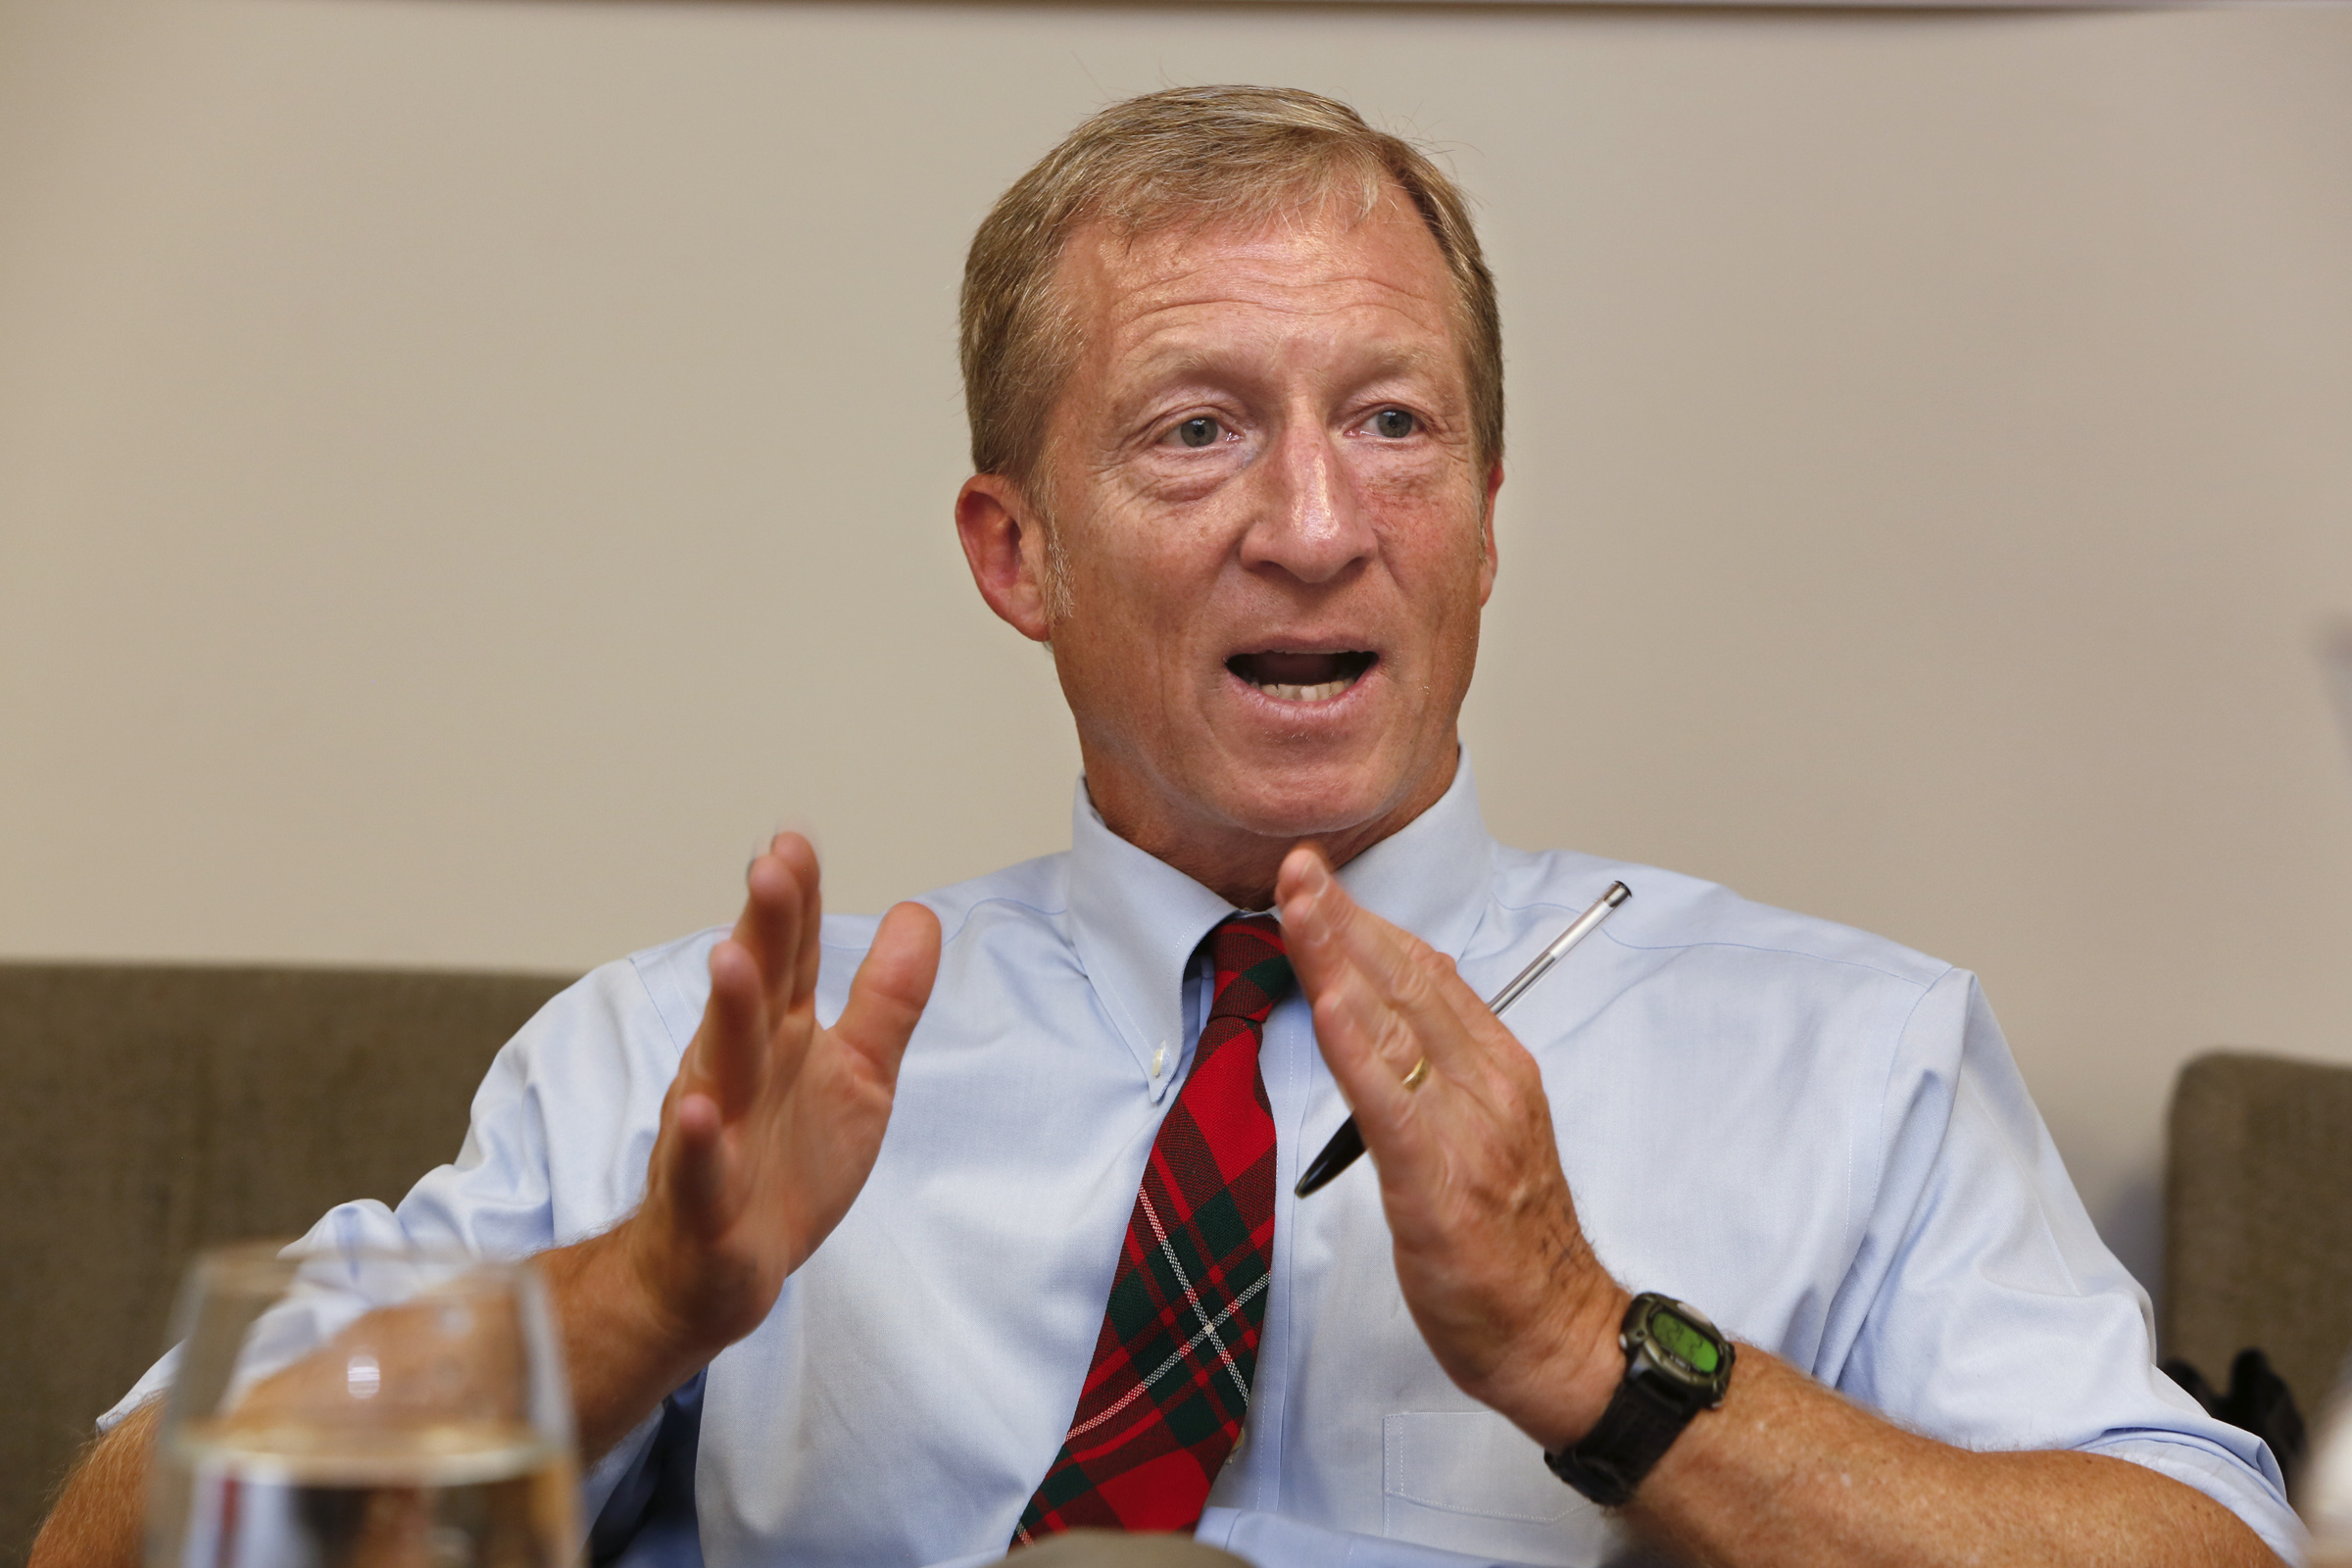 tom-steyer-debate-climate-change.jpg